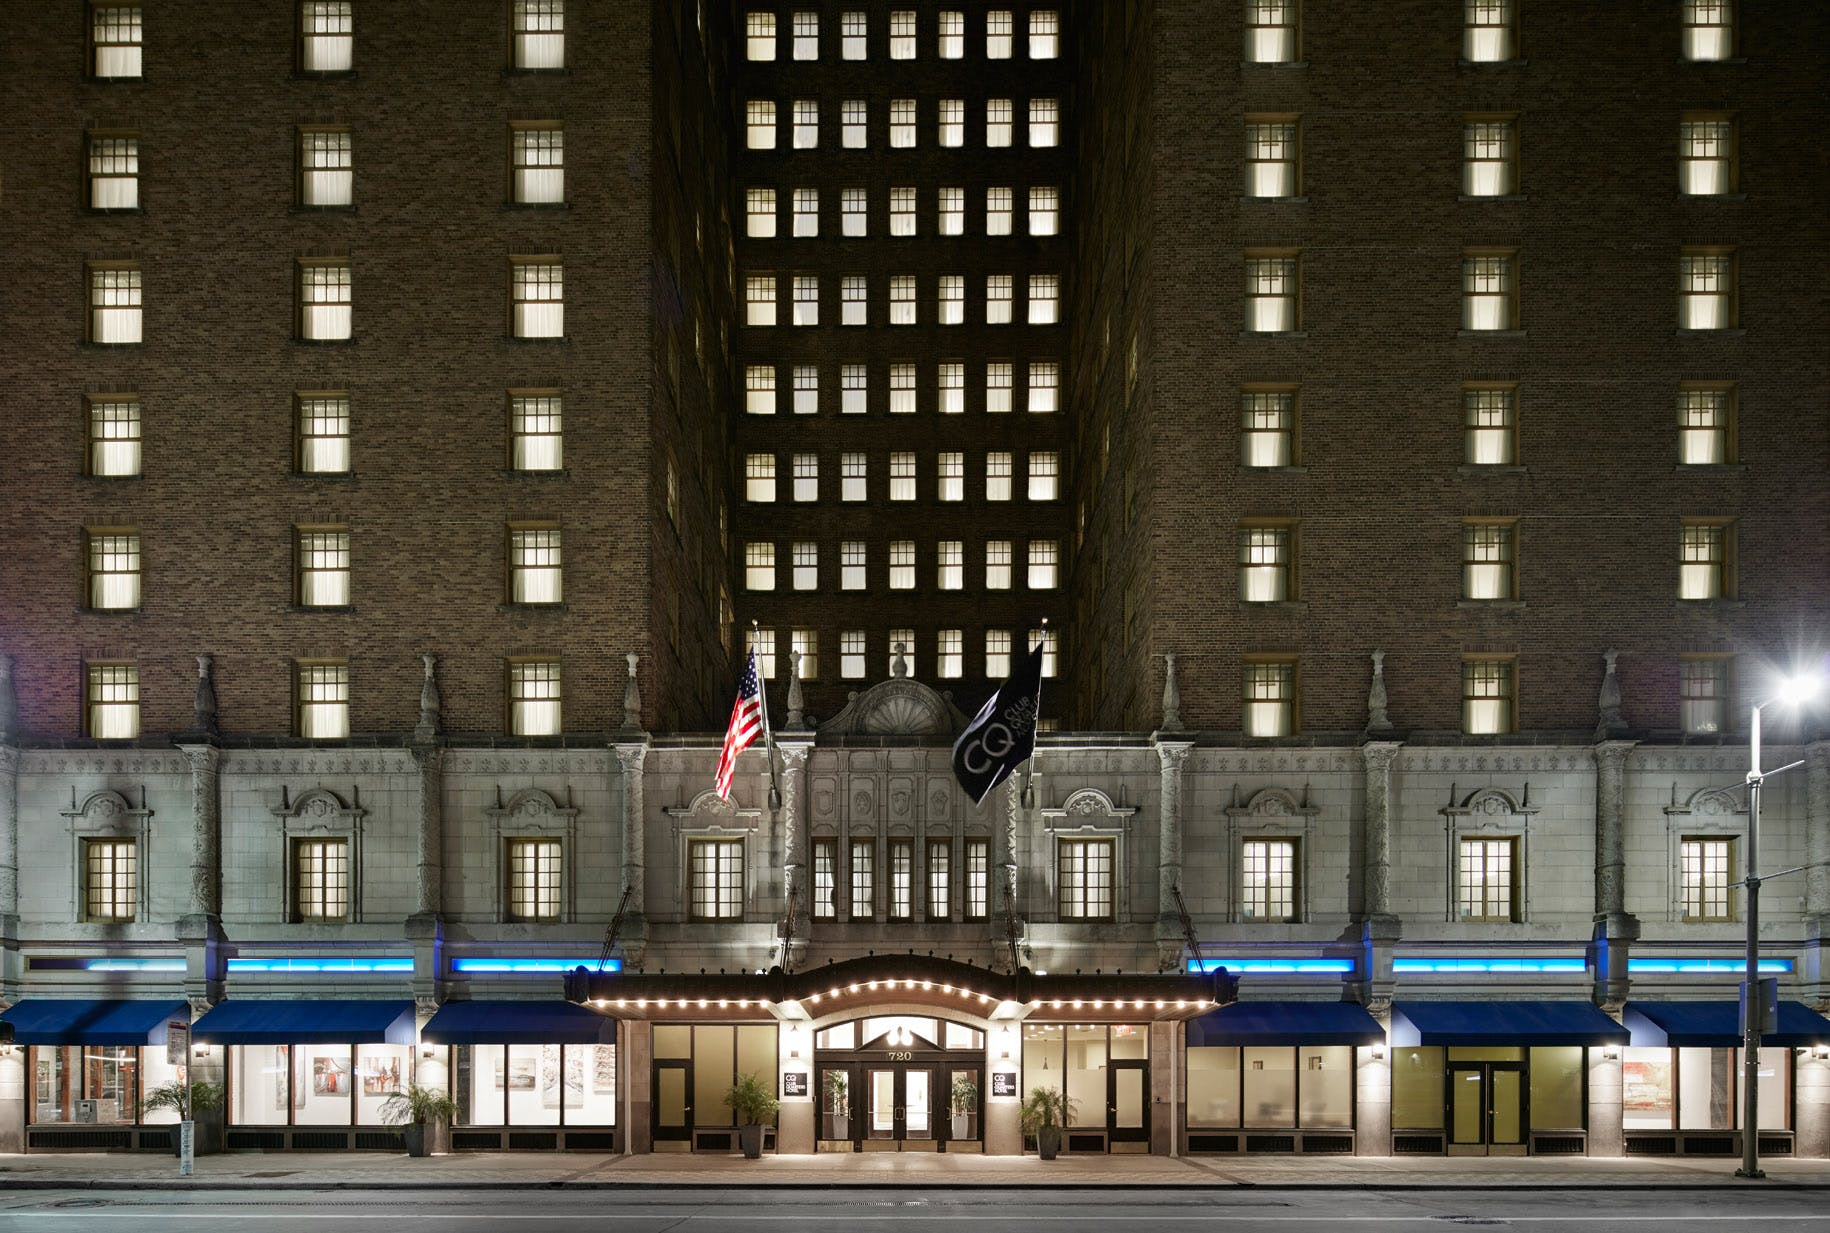 Historic landmark building, Club Quarters Hotel in Houston